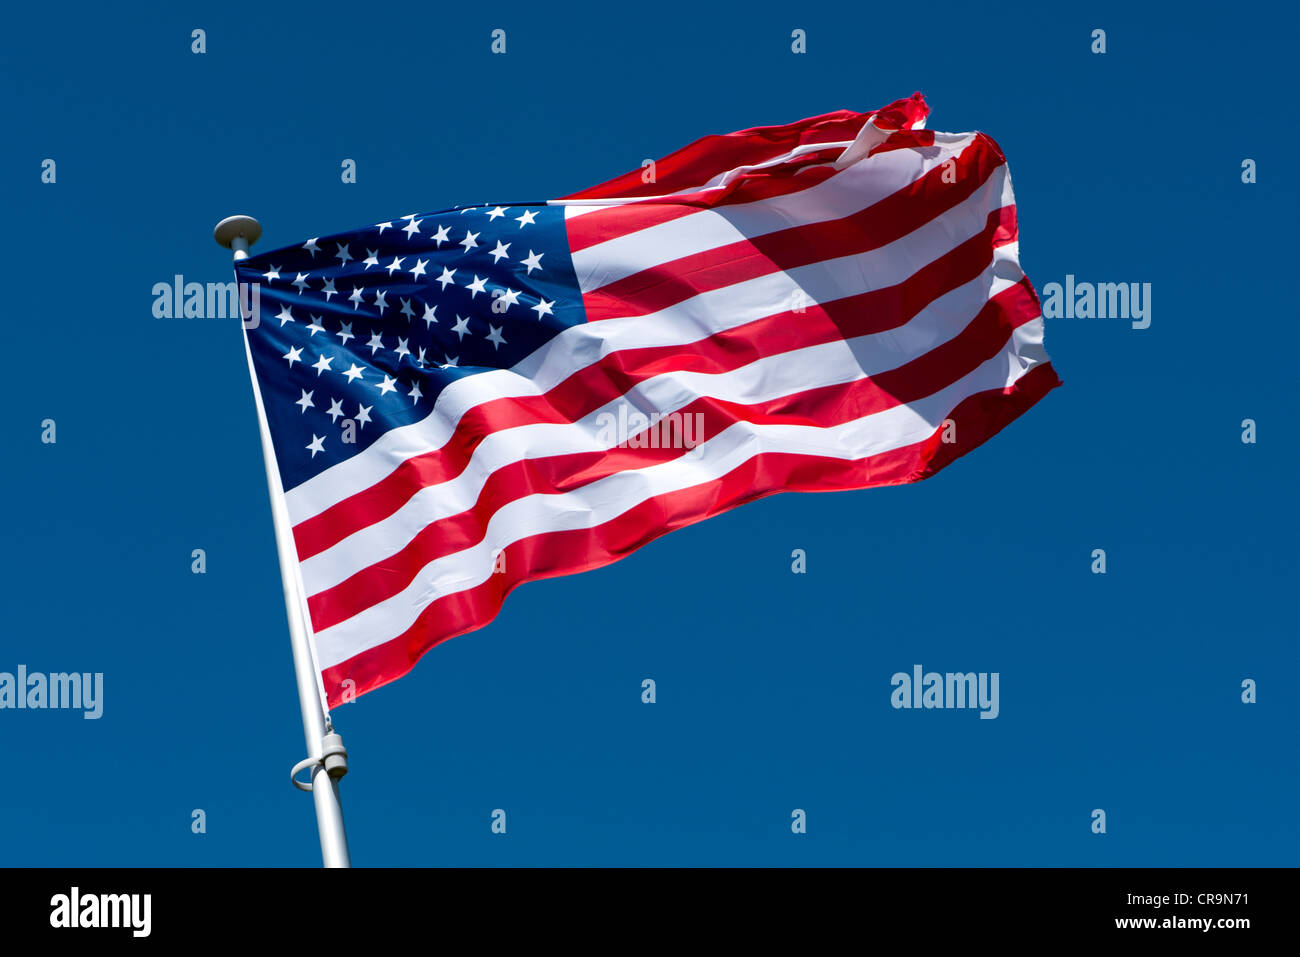 The American flag fluttering atop a flagpole Stock Photo